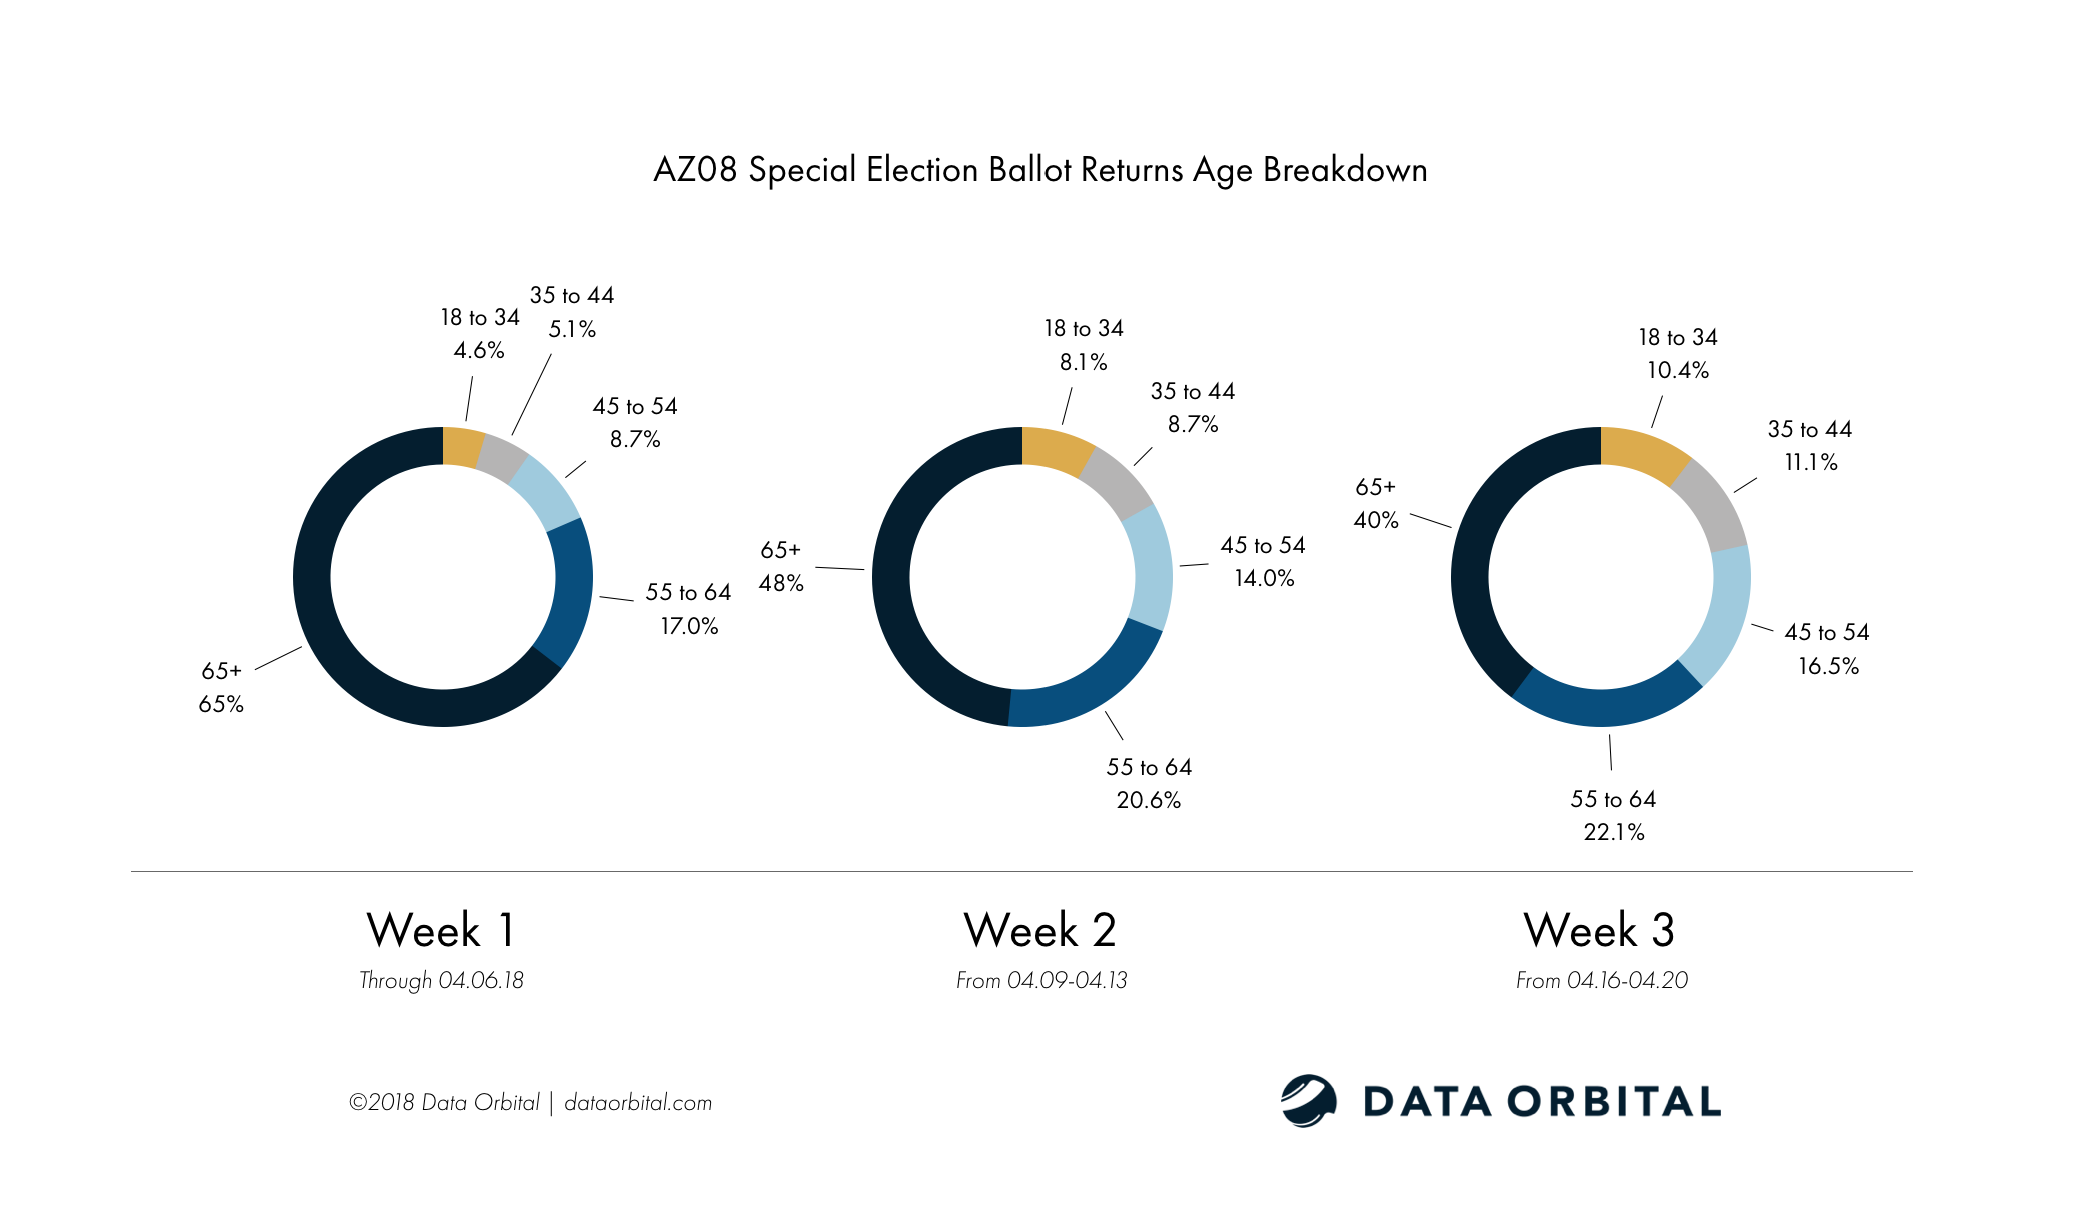 AZ08 Special Election Week 3 Wrap Up and Analysis Age